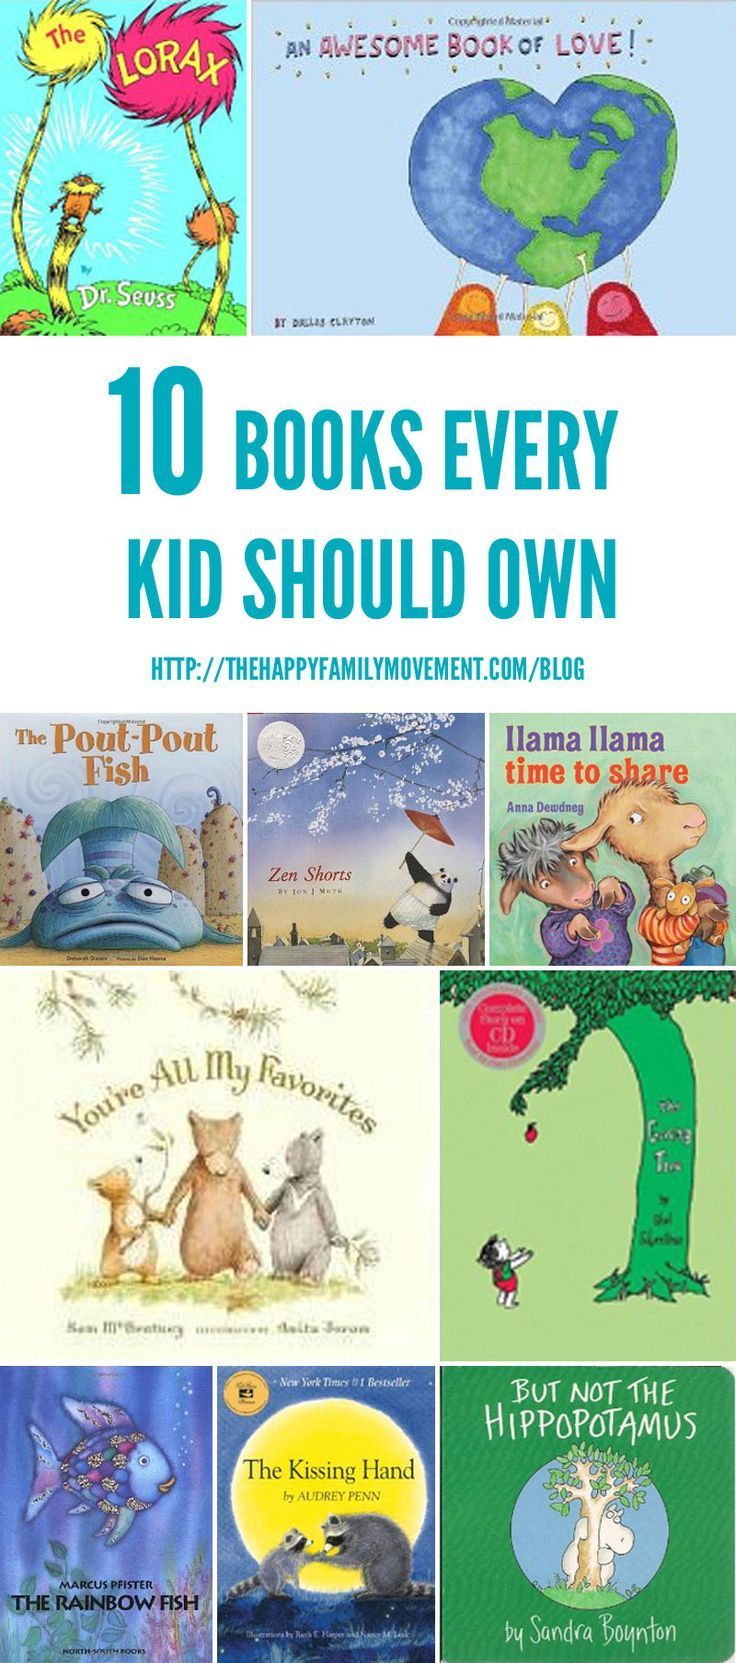 Ten Books Every Kid Should Own